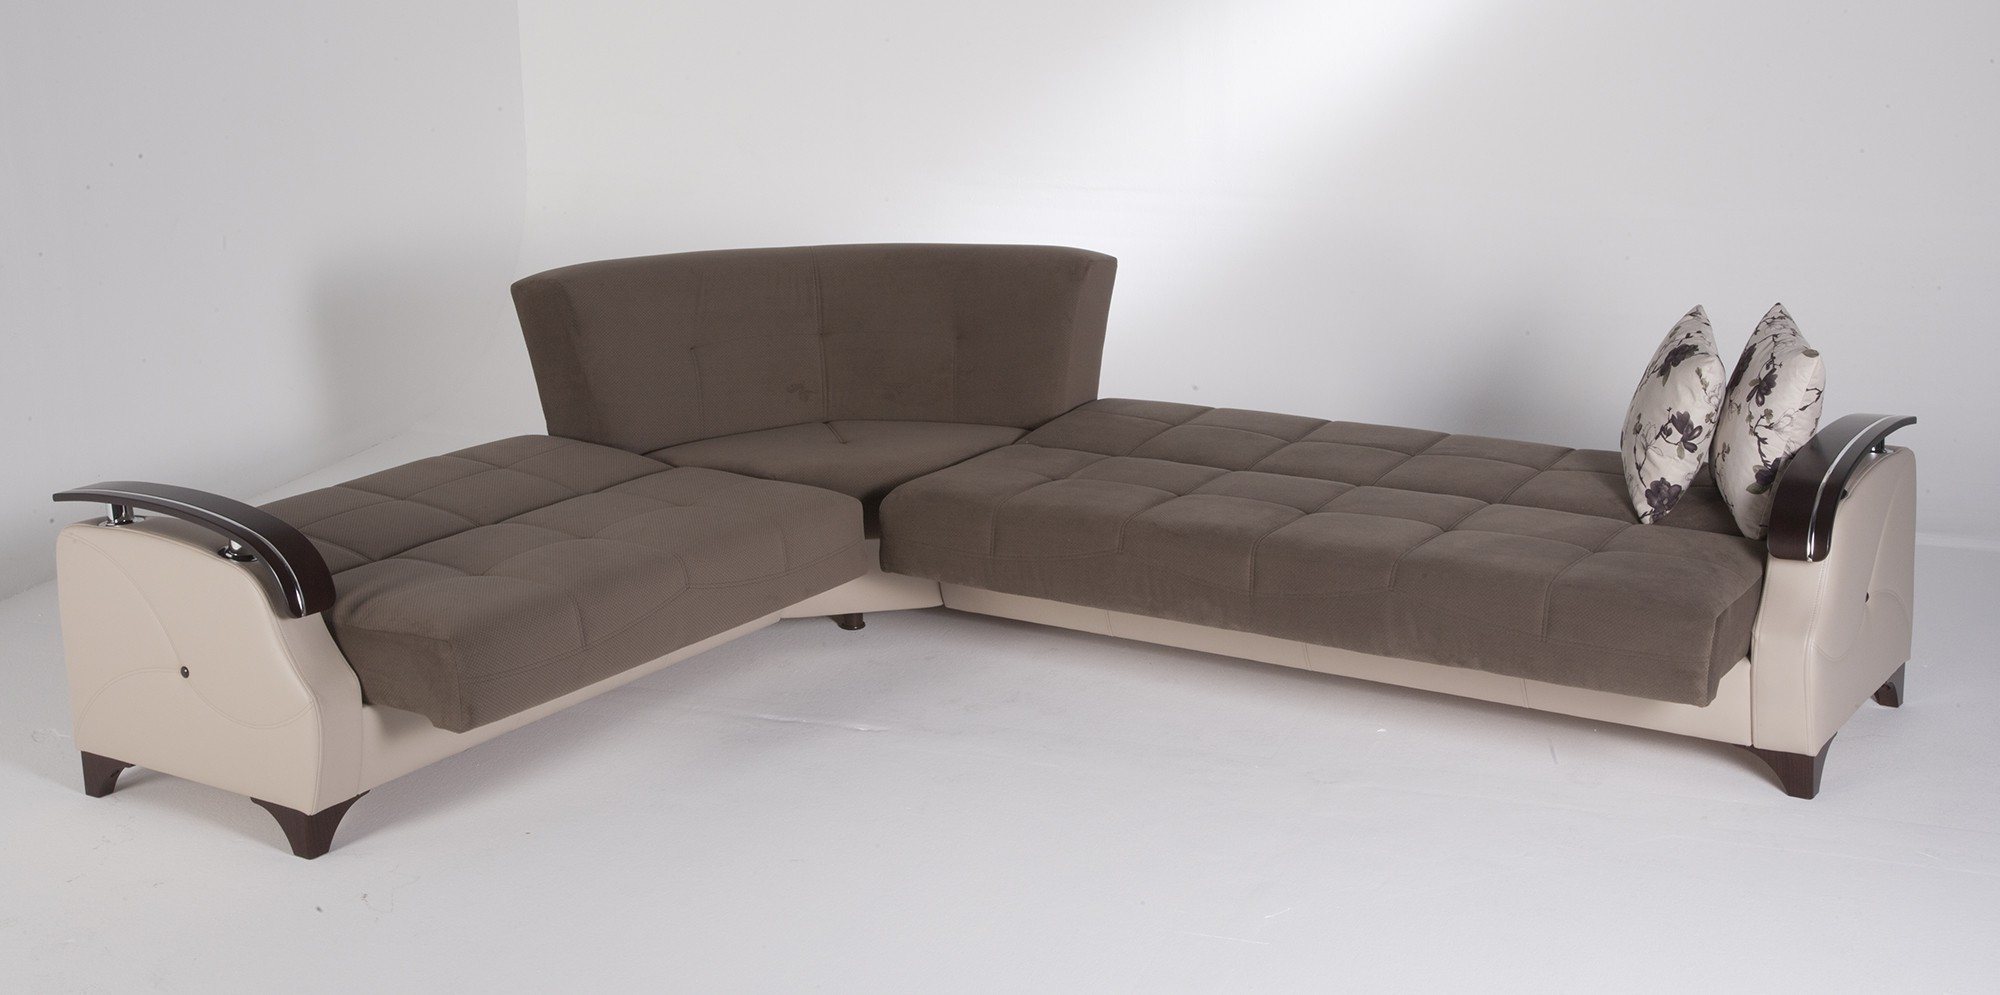 Sectional Sofas With Sleeper In Recent Sofas : Sofa Couch Convertible Sofa Sofas And Sectionals Sectional (View 7 of 20)